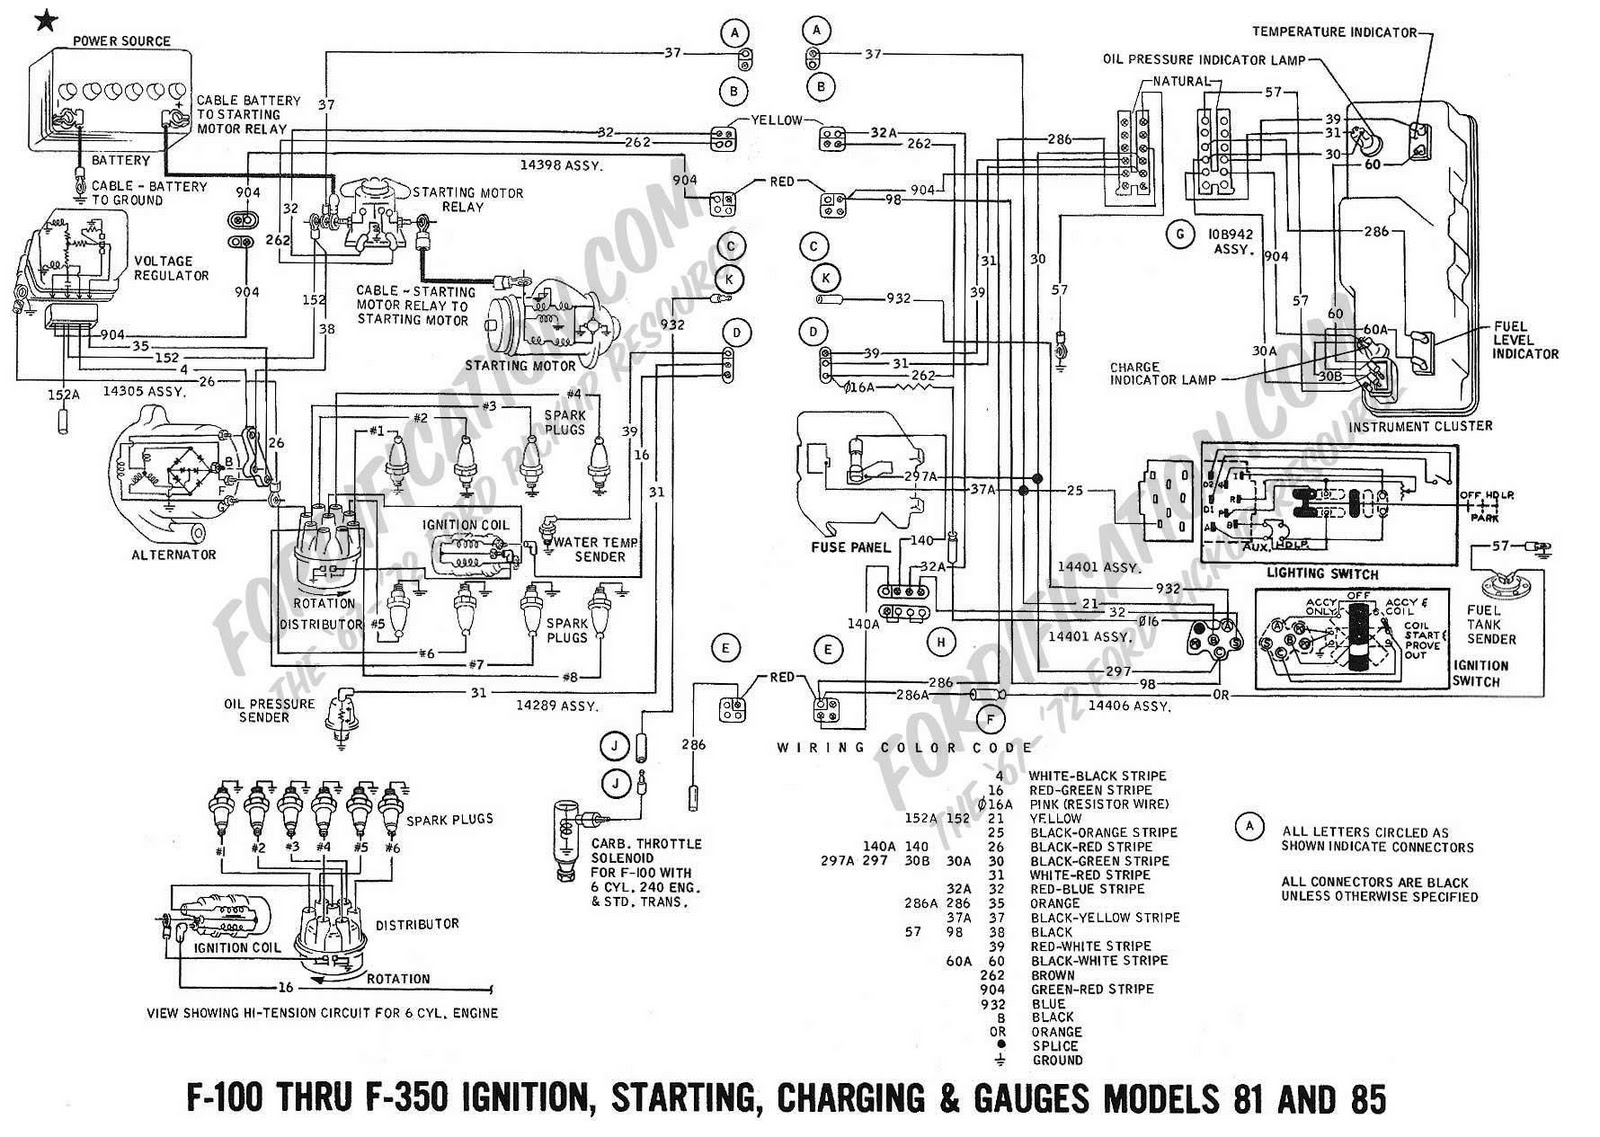 1983 Ford F150 Radio Wiring Diagram Nervous System Fill In The Blank 1969 F100-f350 Ignition, Starting, Charging, And Gauges | All About ...